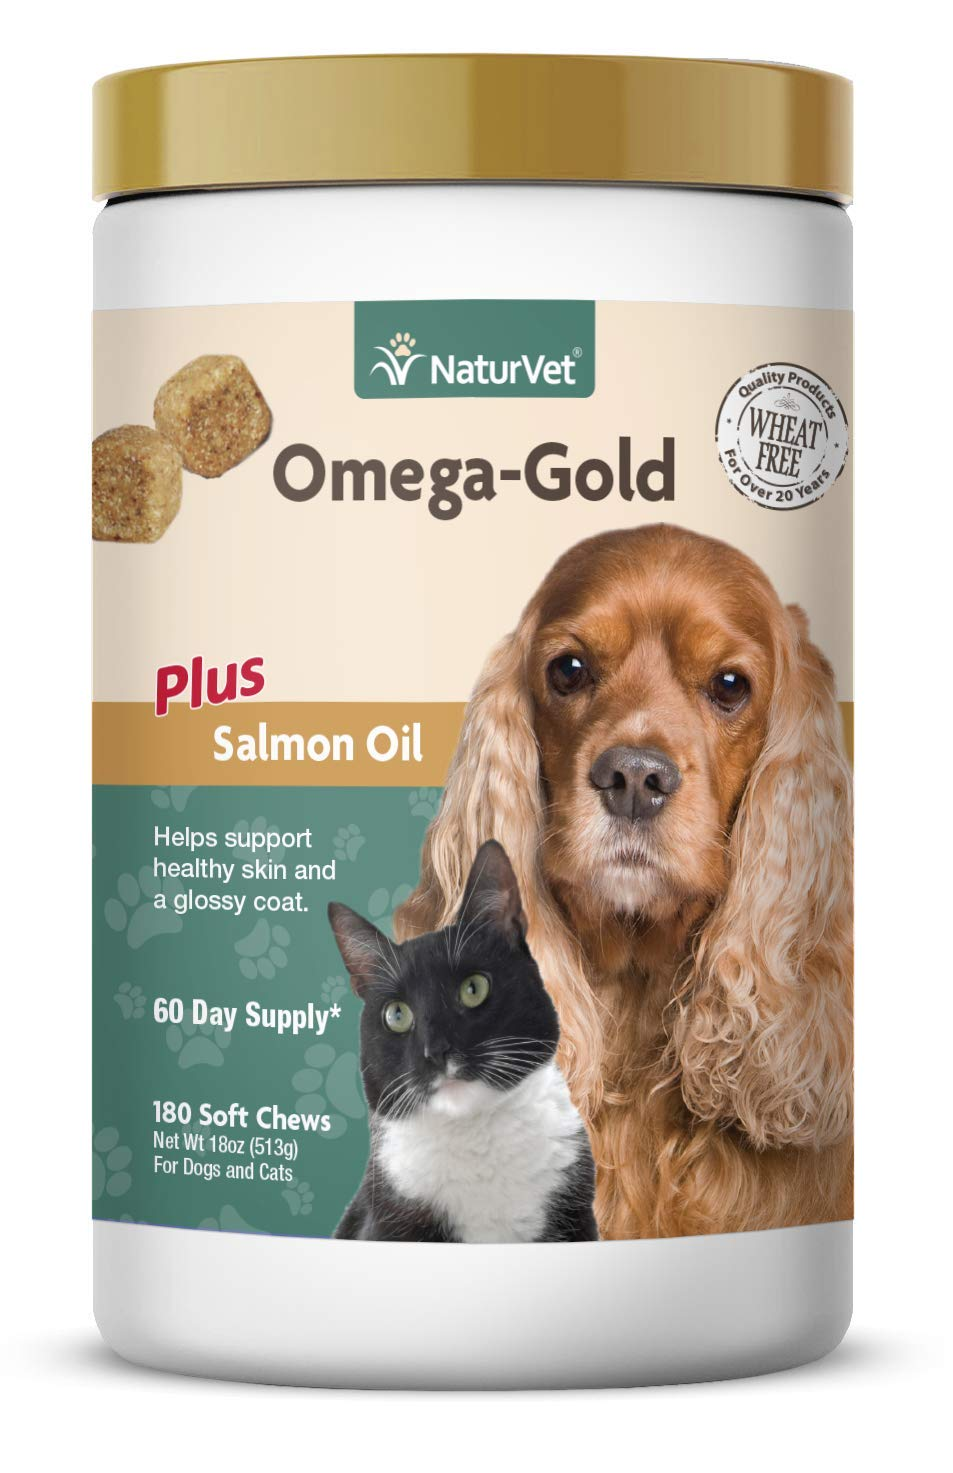 NaturVet - Omega-Gold Plus Salmon Oil - Supports Healthy Skin & Glossy Coat - Enhanced with DHA, EPA, Omega-3 & Omega-6 - for Dogs & Cats - 180 Soft Chews by NaturVet